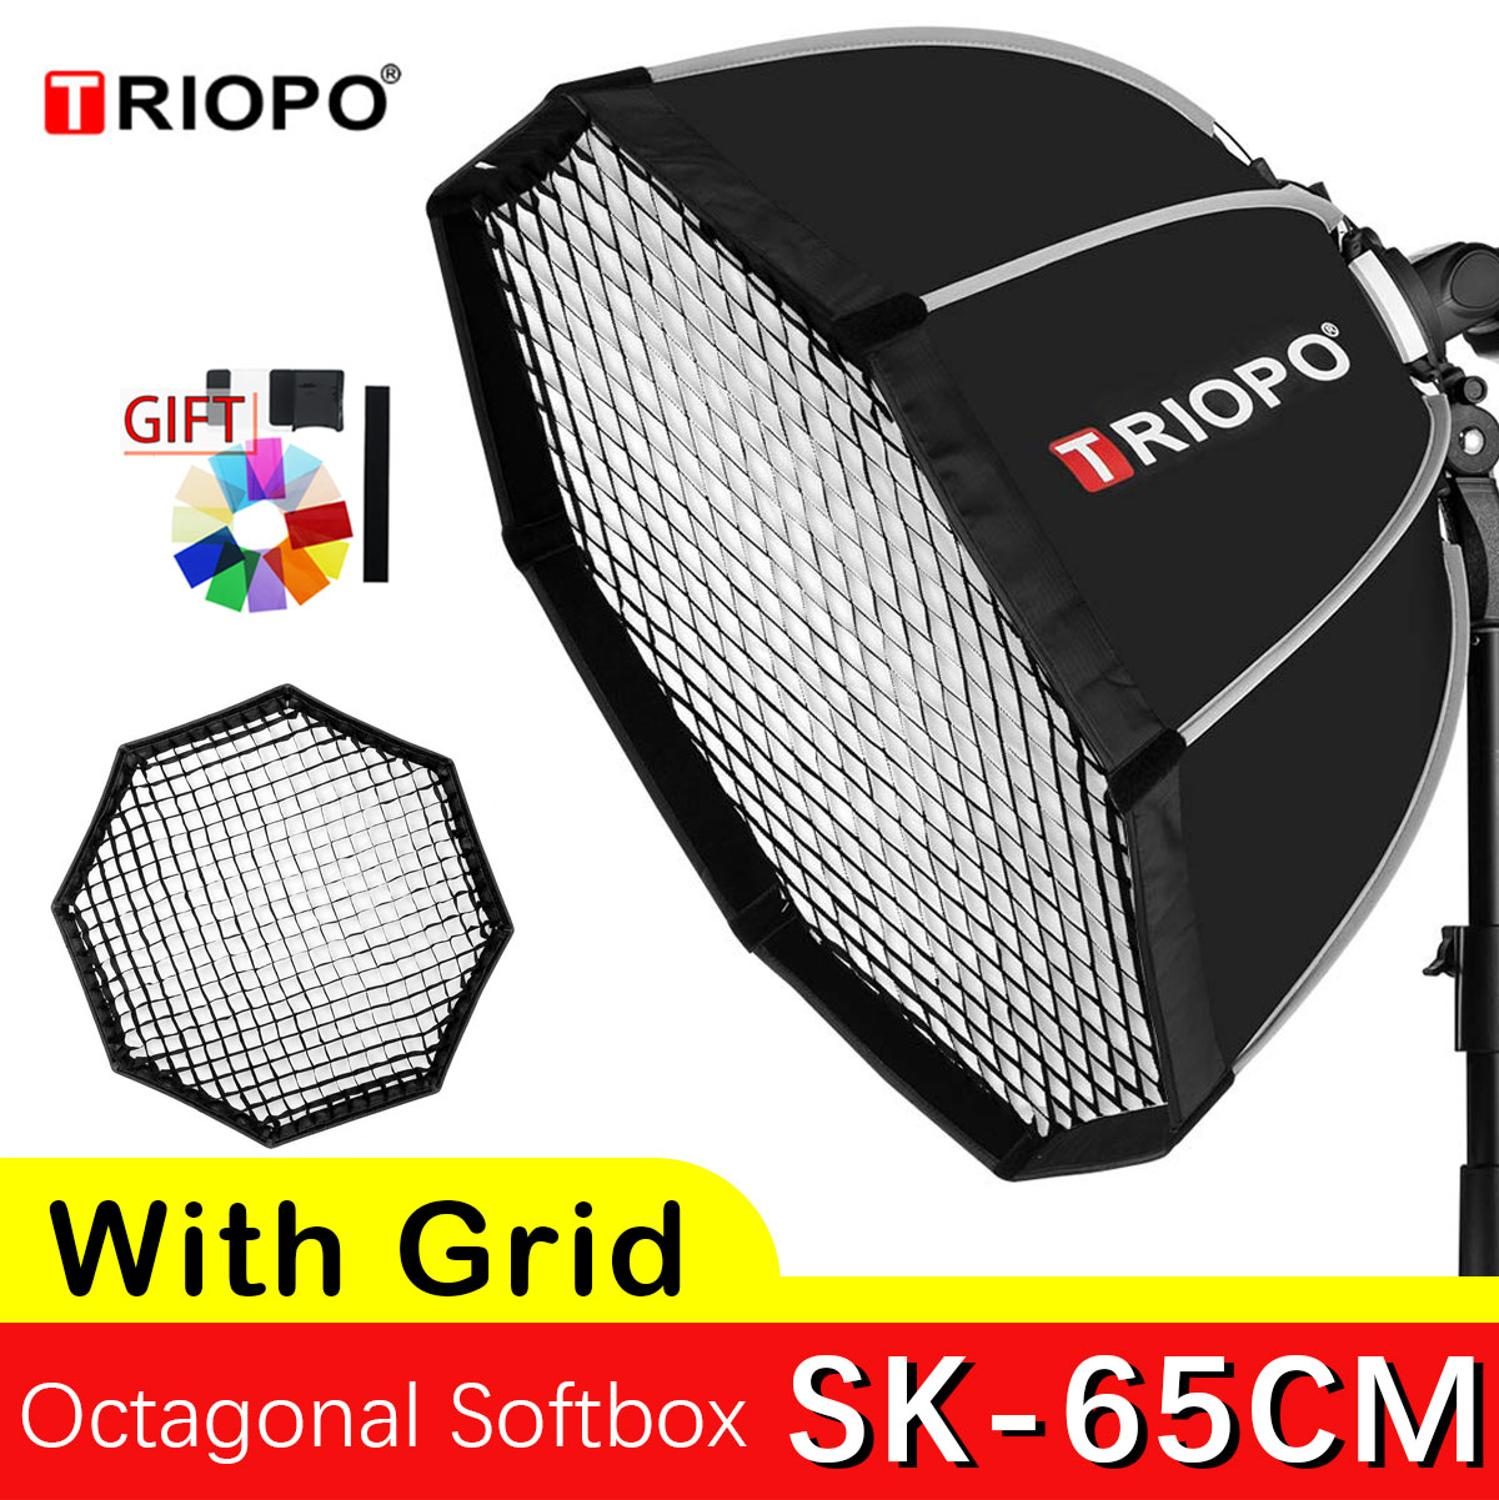 TRIOPO 65cm Octagon Softbox Grid Umbrella Softbox With Handle For Godox On-Camare Flash Speedlite Photography Studio Accessories